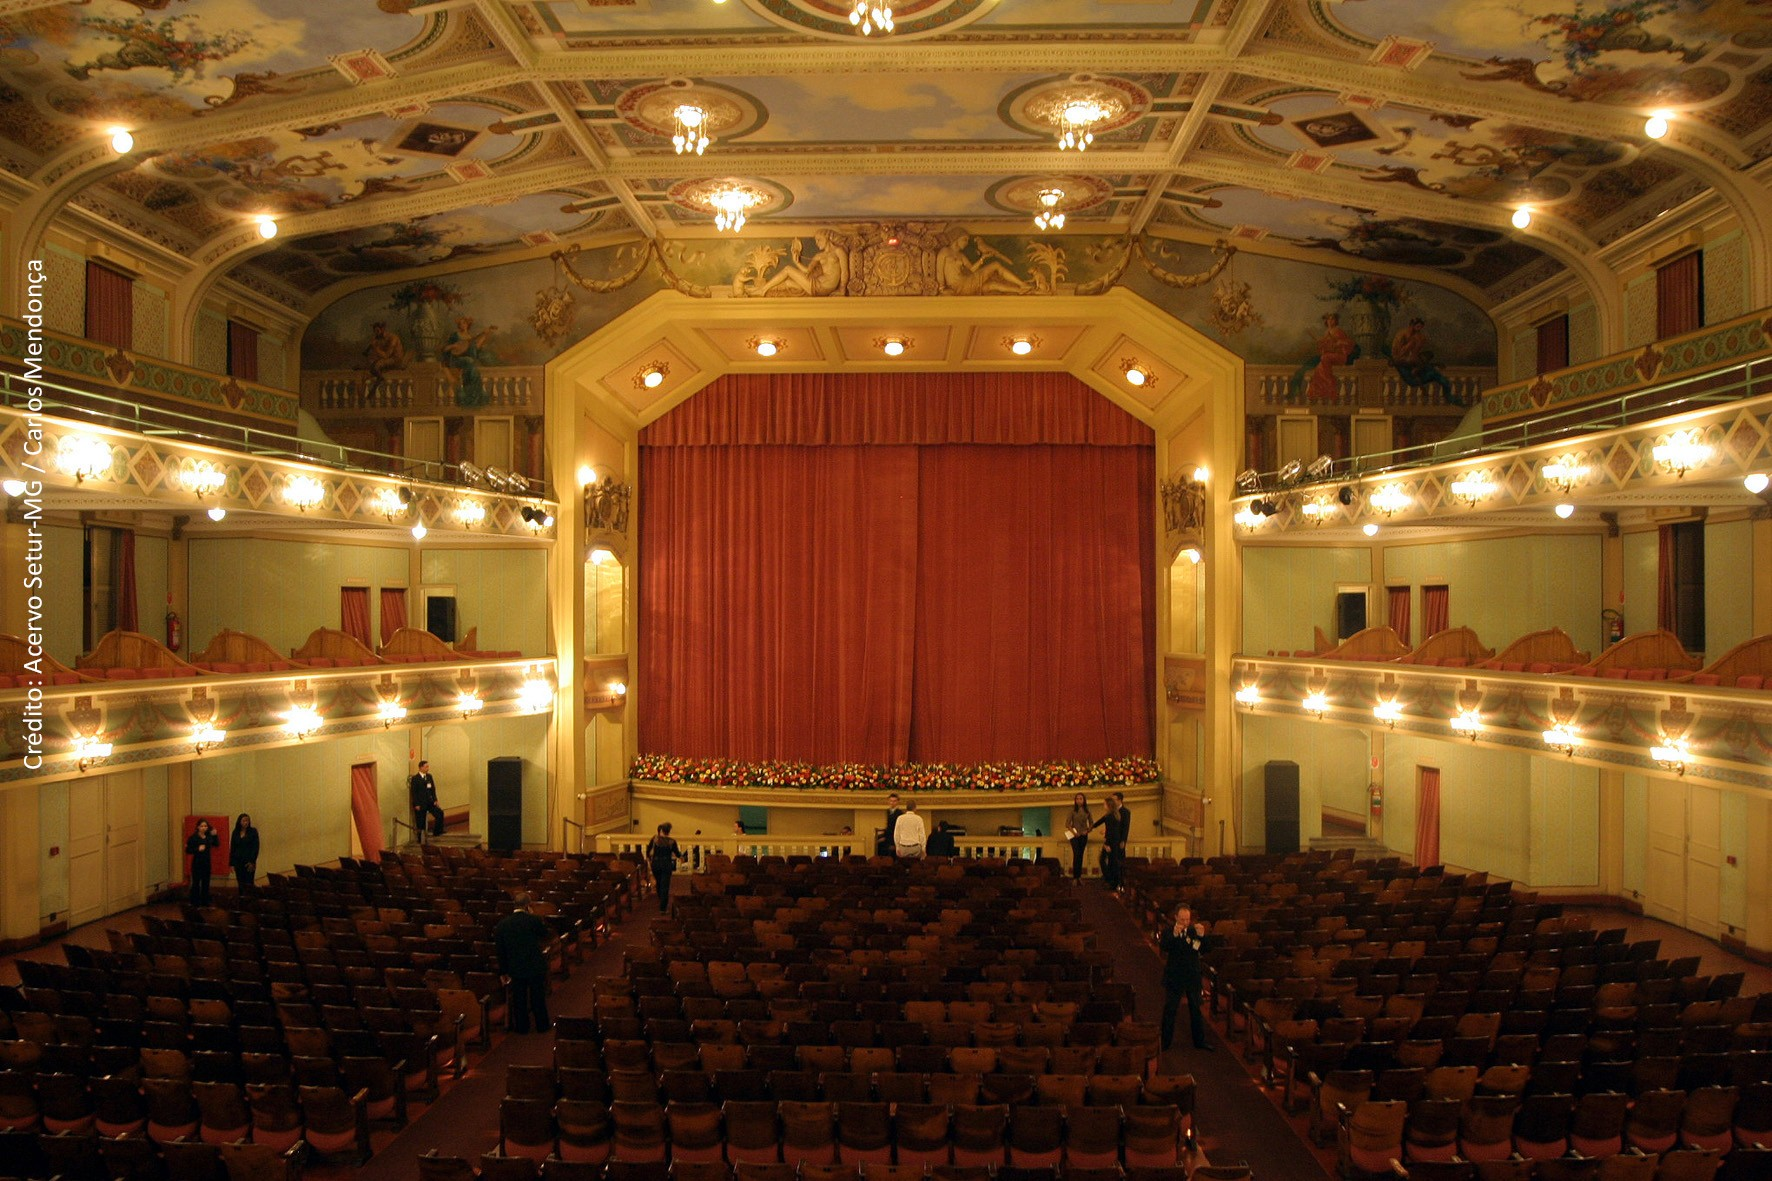 Cine Theatro Central